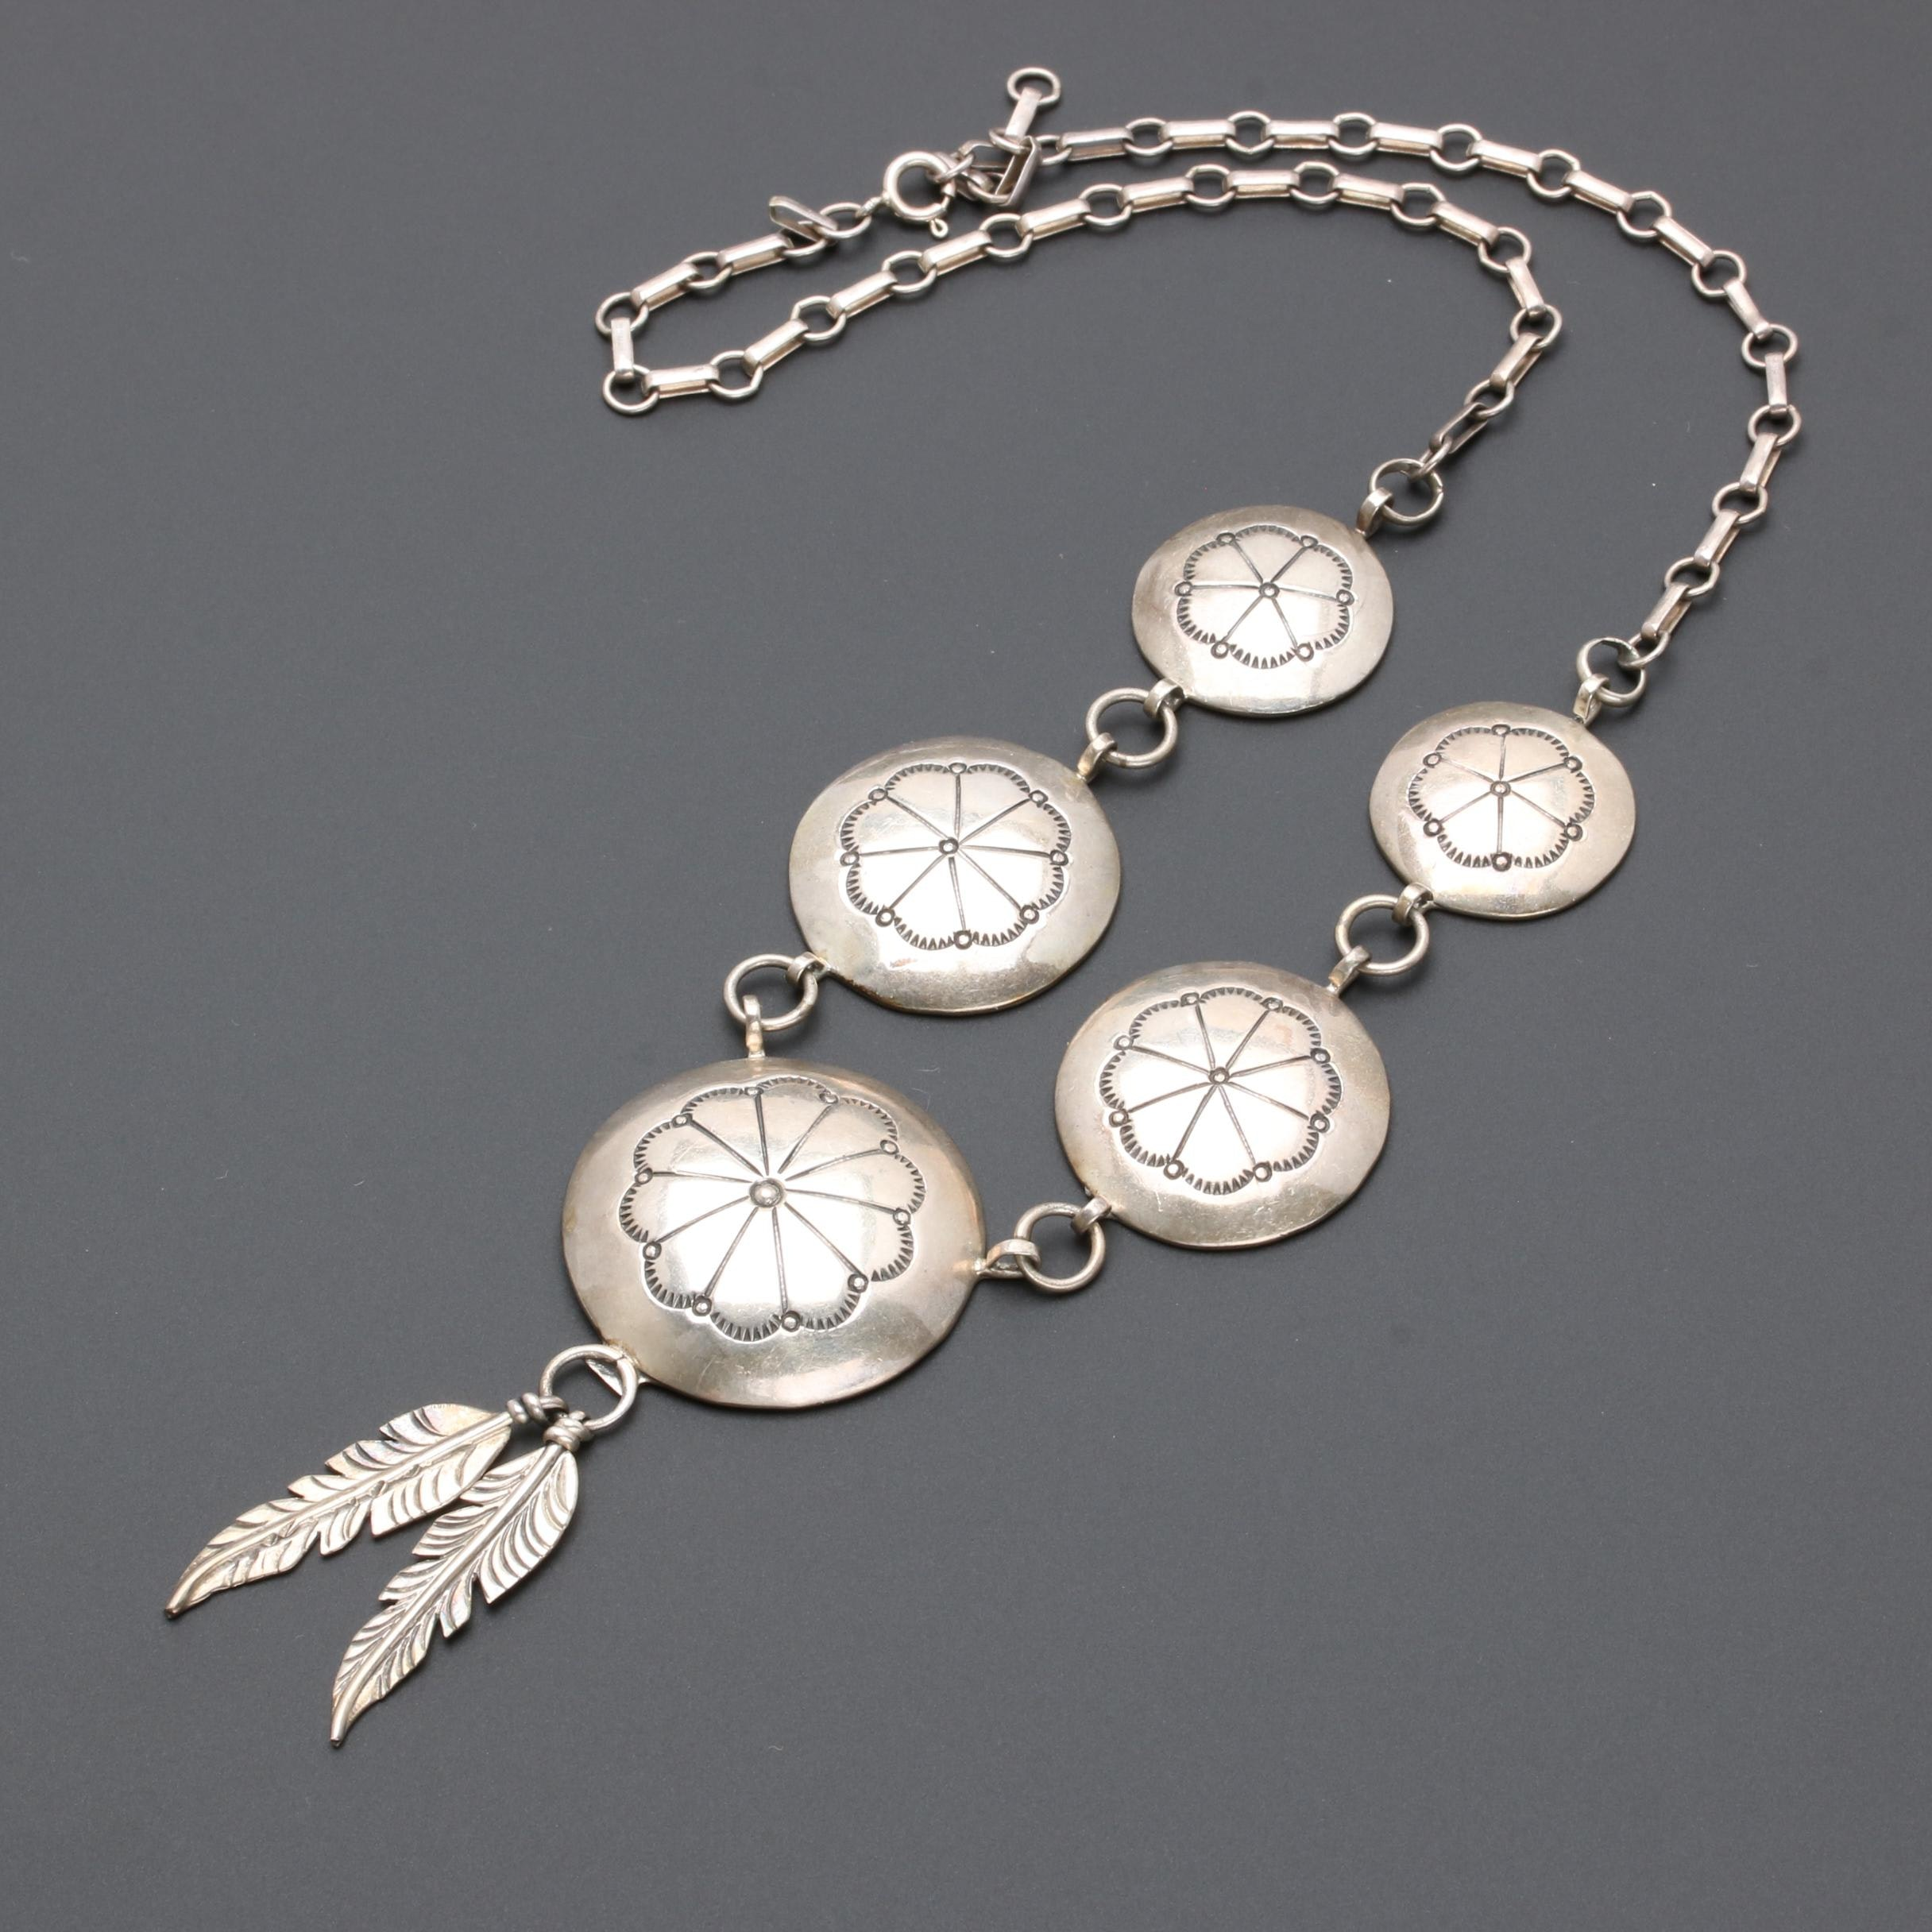 Fred Guerro Navajo Diné Sterling Silver Concho Necklace